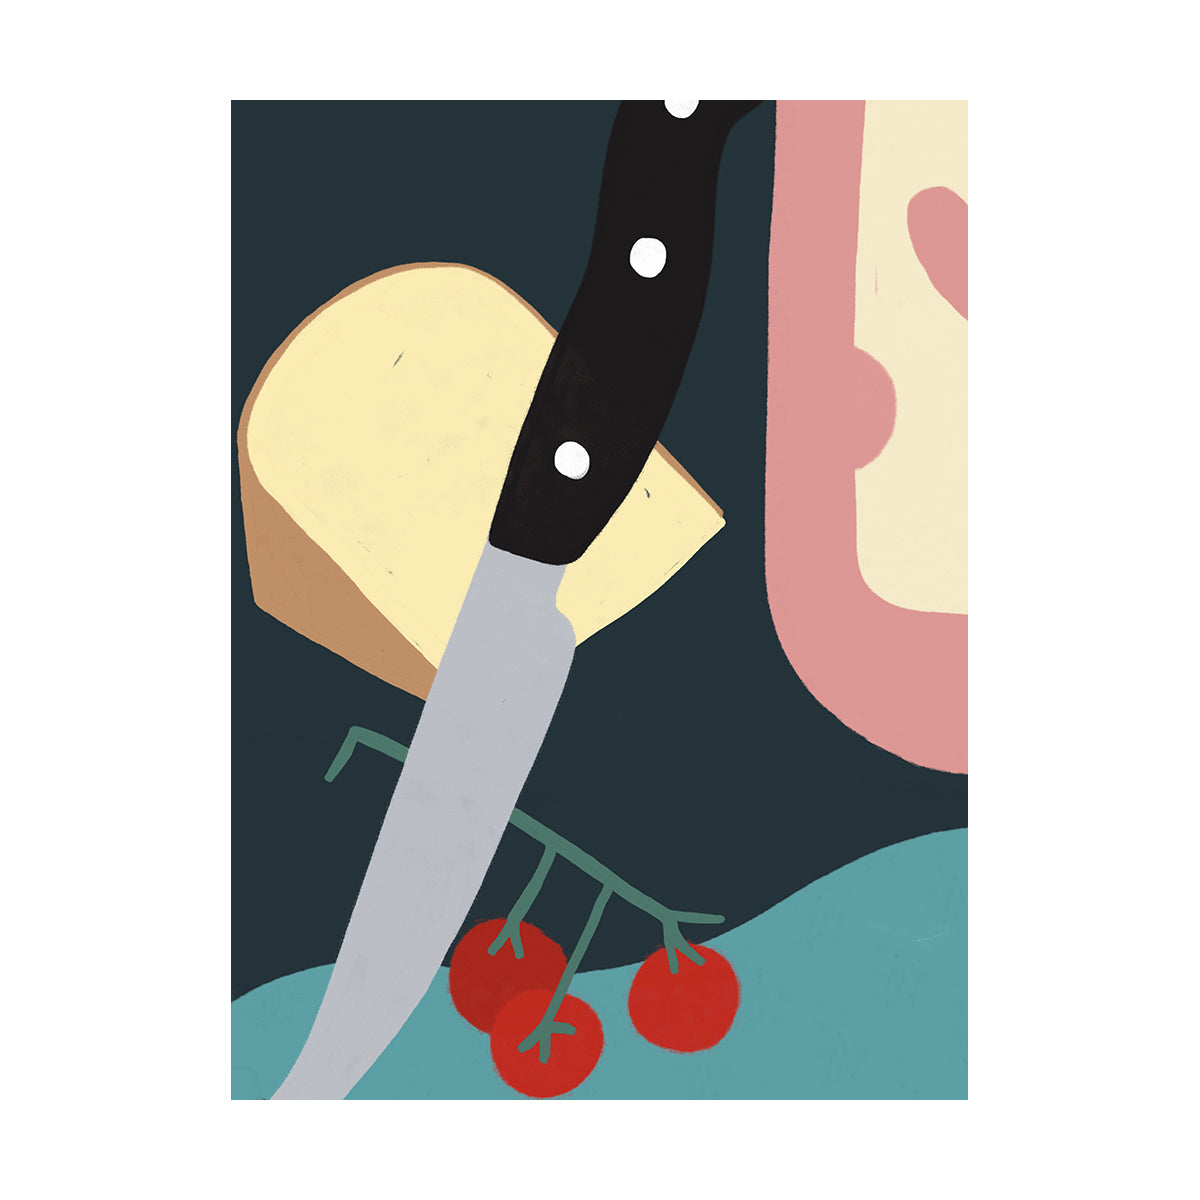 Cheesy Knife by Fabienne Meyer - art print